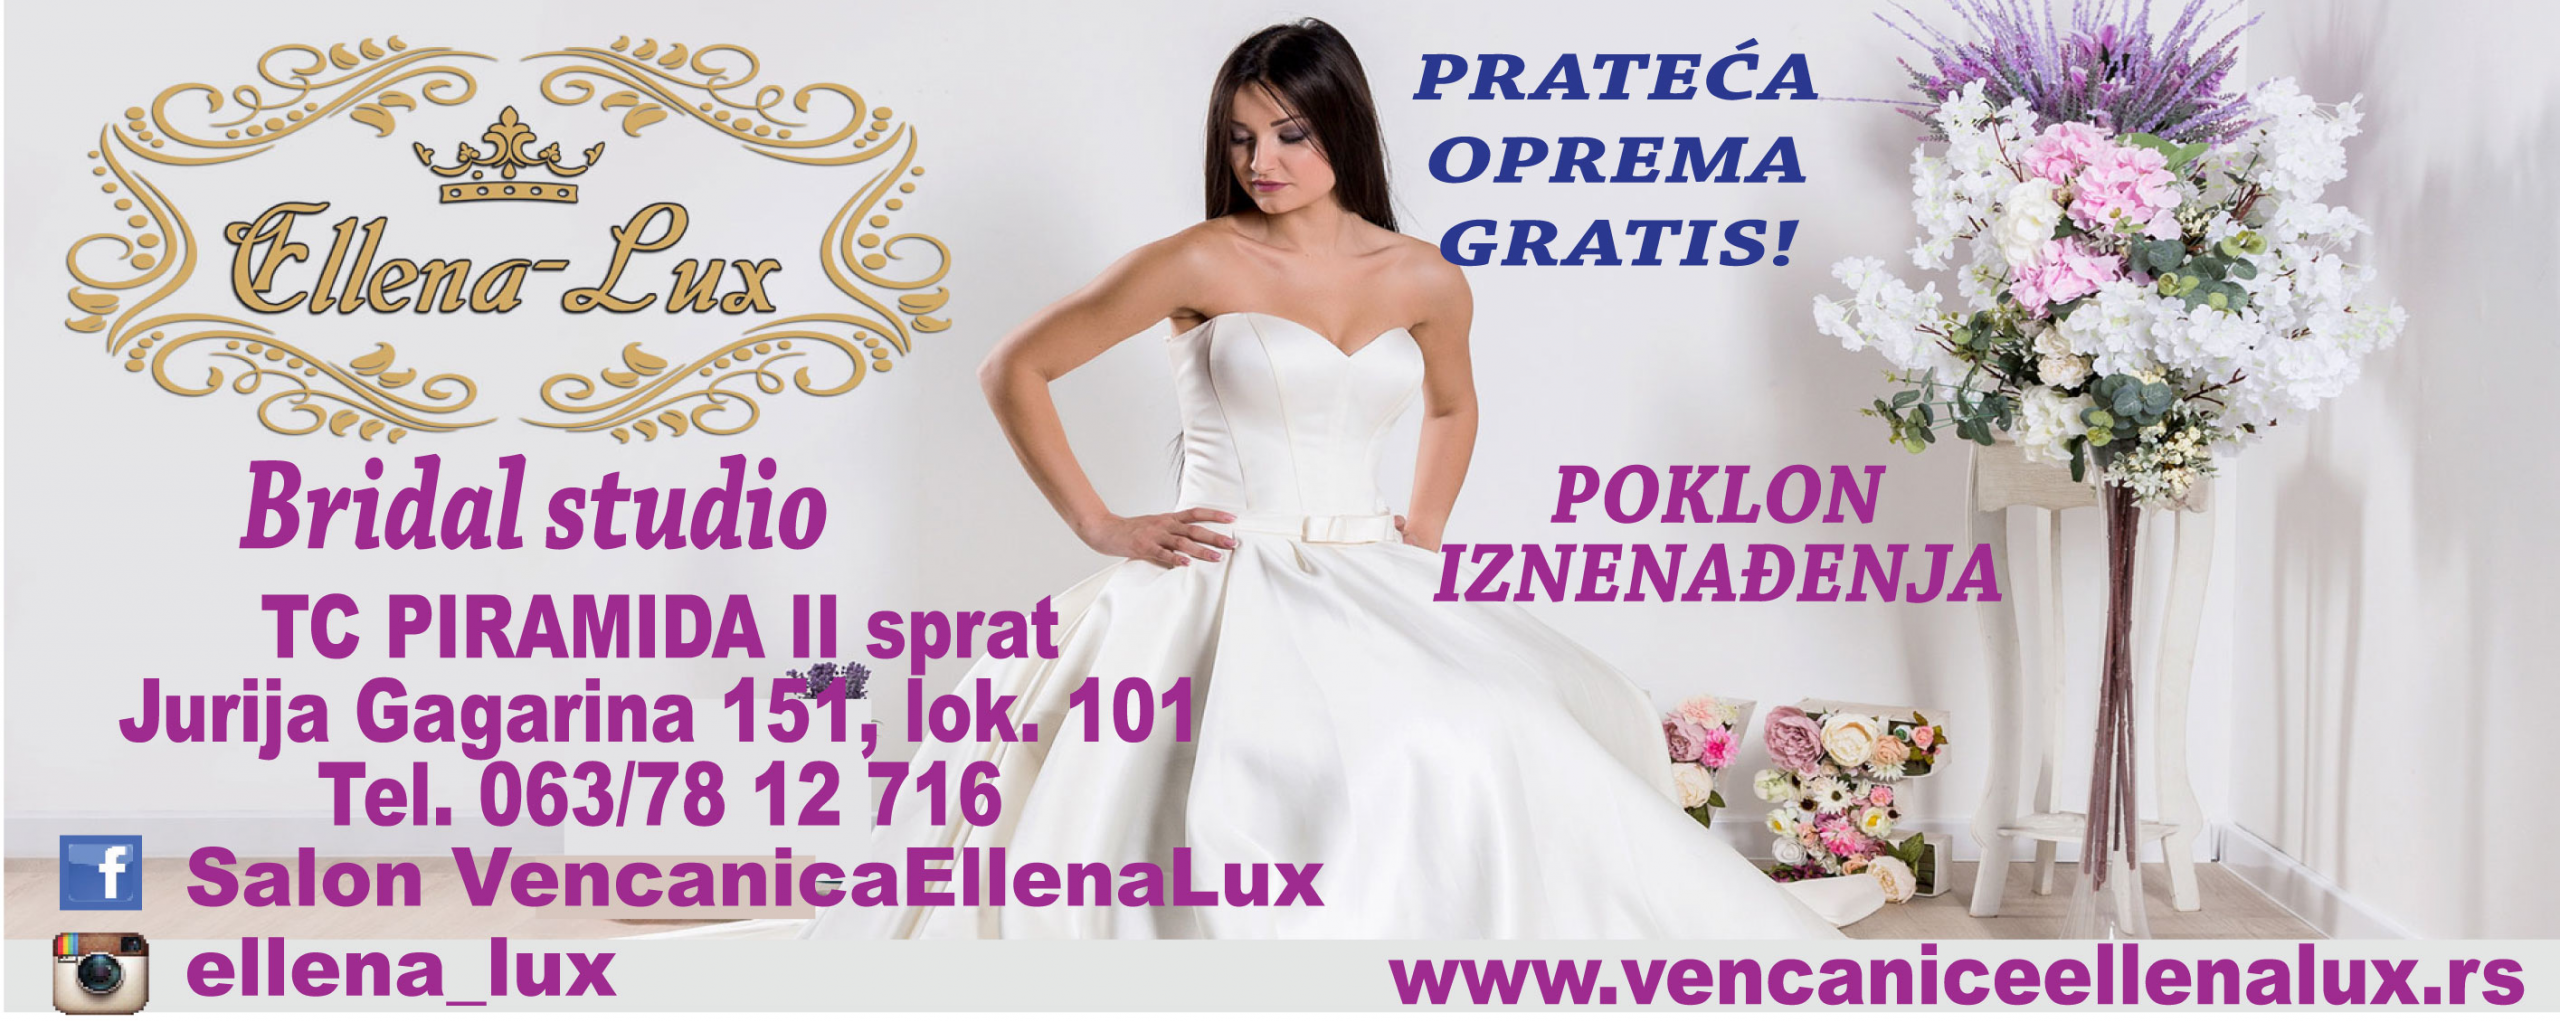 ellena-lux-vencanice-tc-piramida-svecane-haljine-najbolje-dress-top-wedding-house-celebration-mojabaza